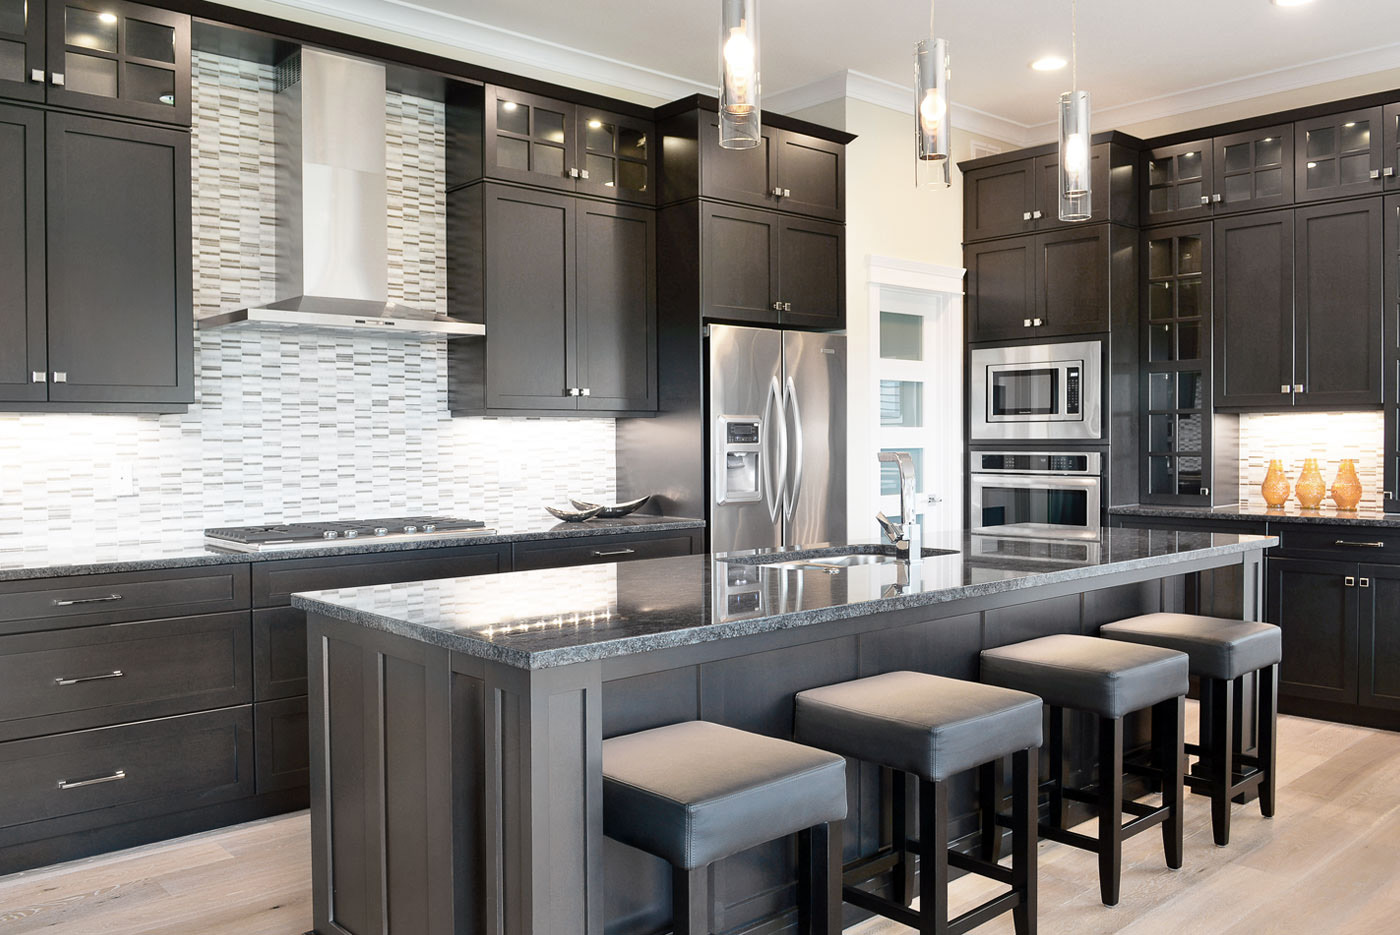 Dark Maple cabinetry in an open concept contemporary styled kitchen from the STARS Home Lottery Saskatchewan Show Home. Cabinetry designed and provided by Superior Cabinets.